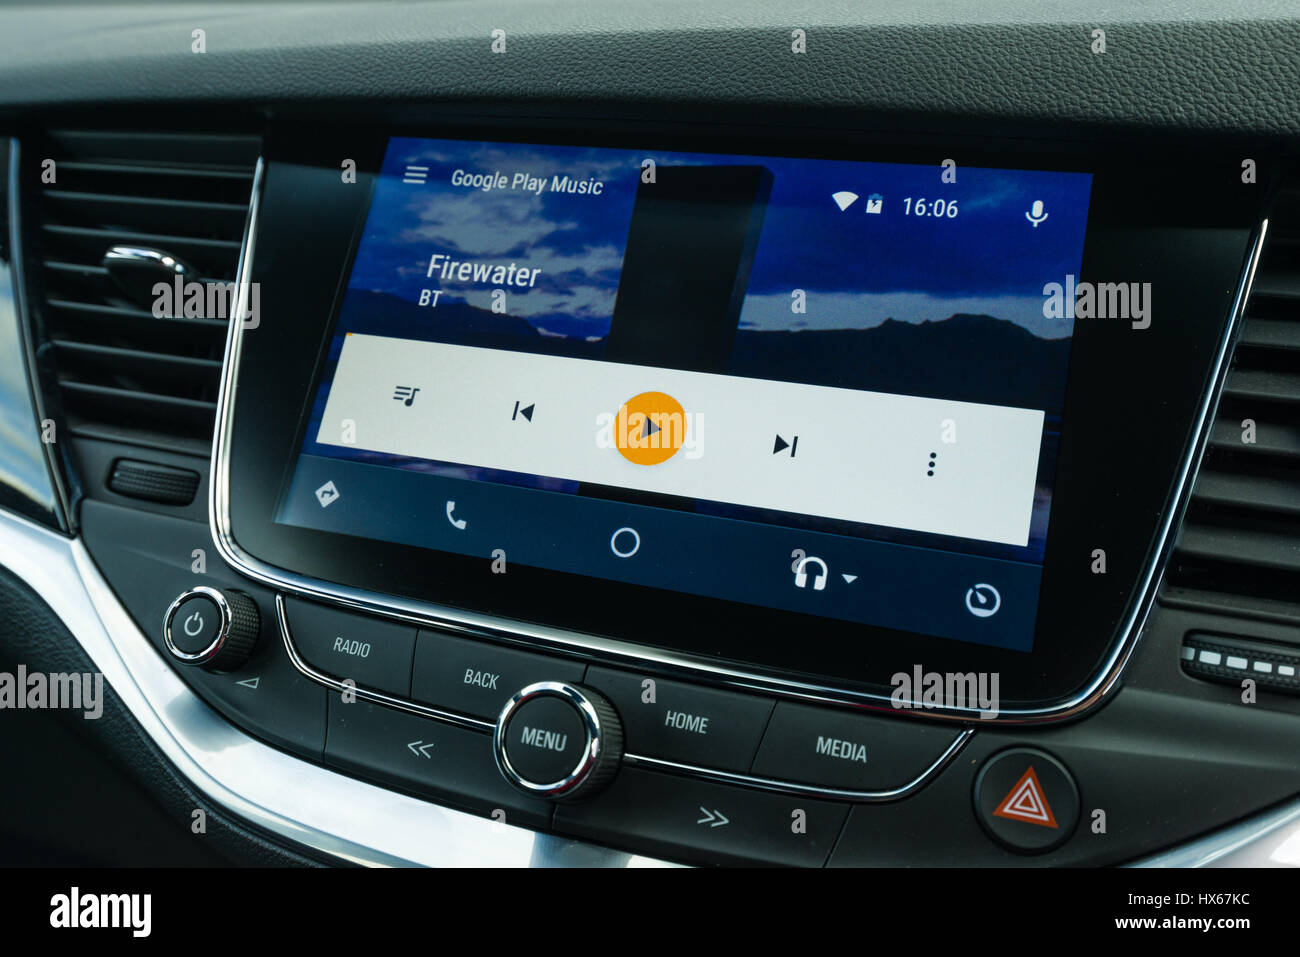 Android Auto Car Vehicle Navigation Interface Showing Google Play Music Interface - Stock Image